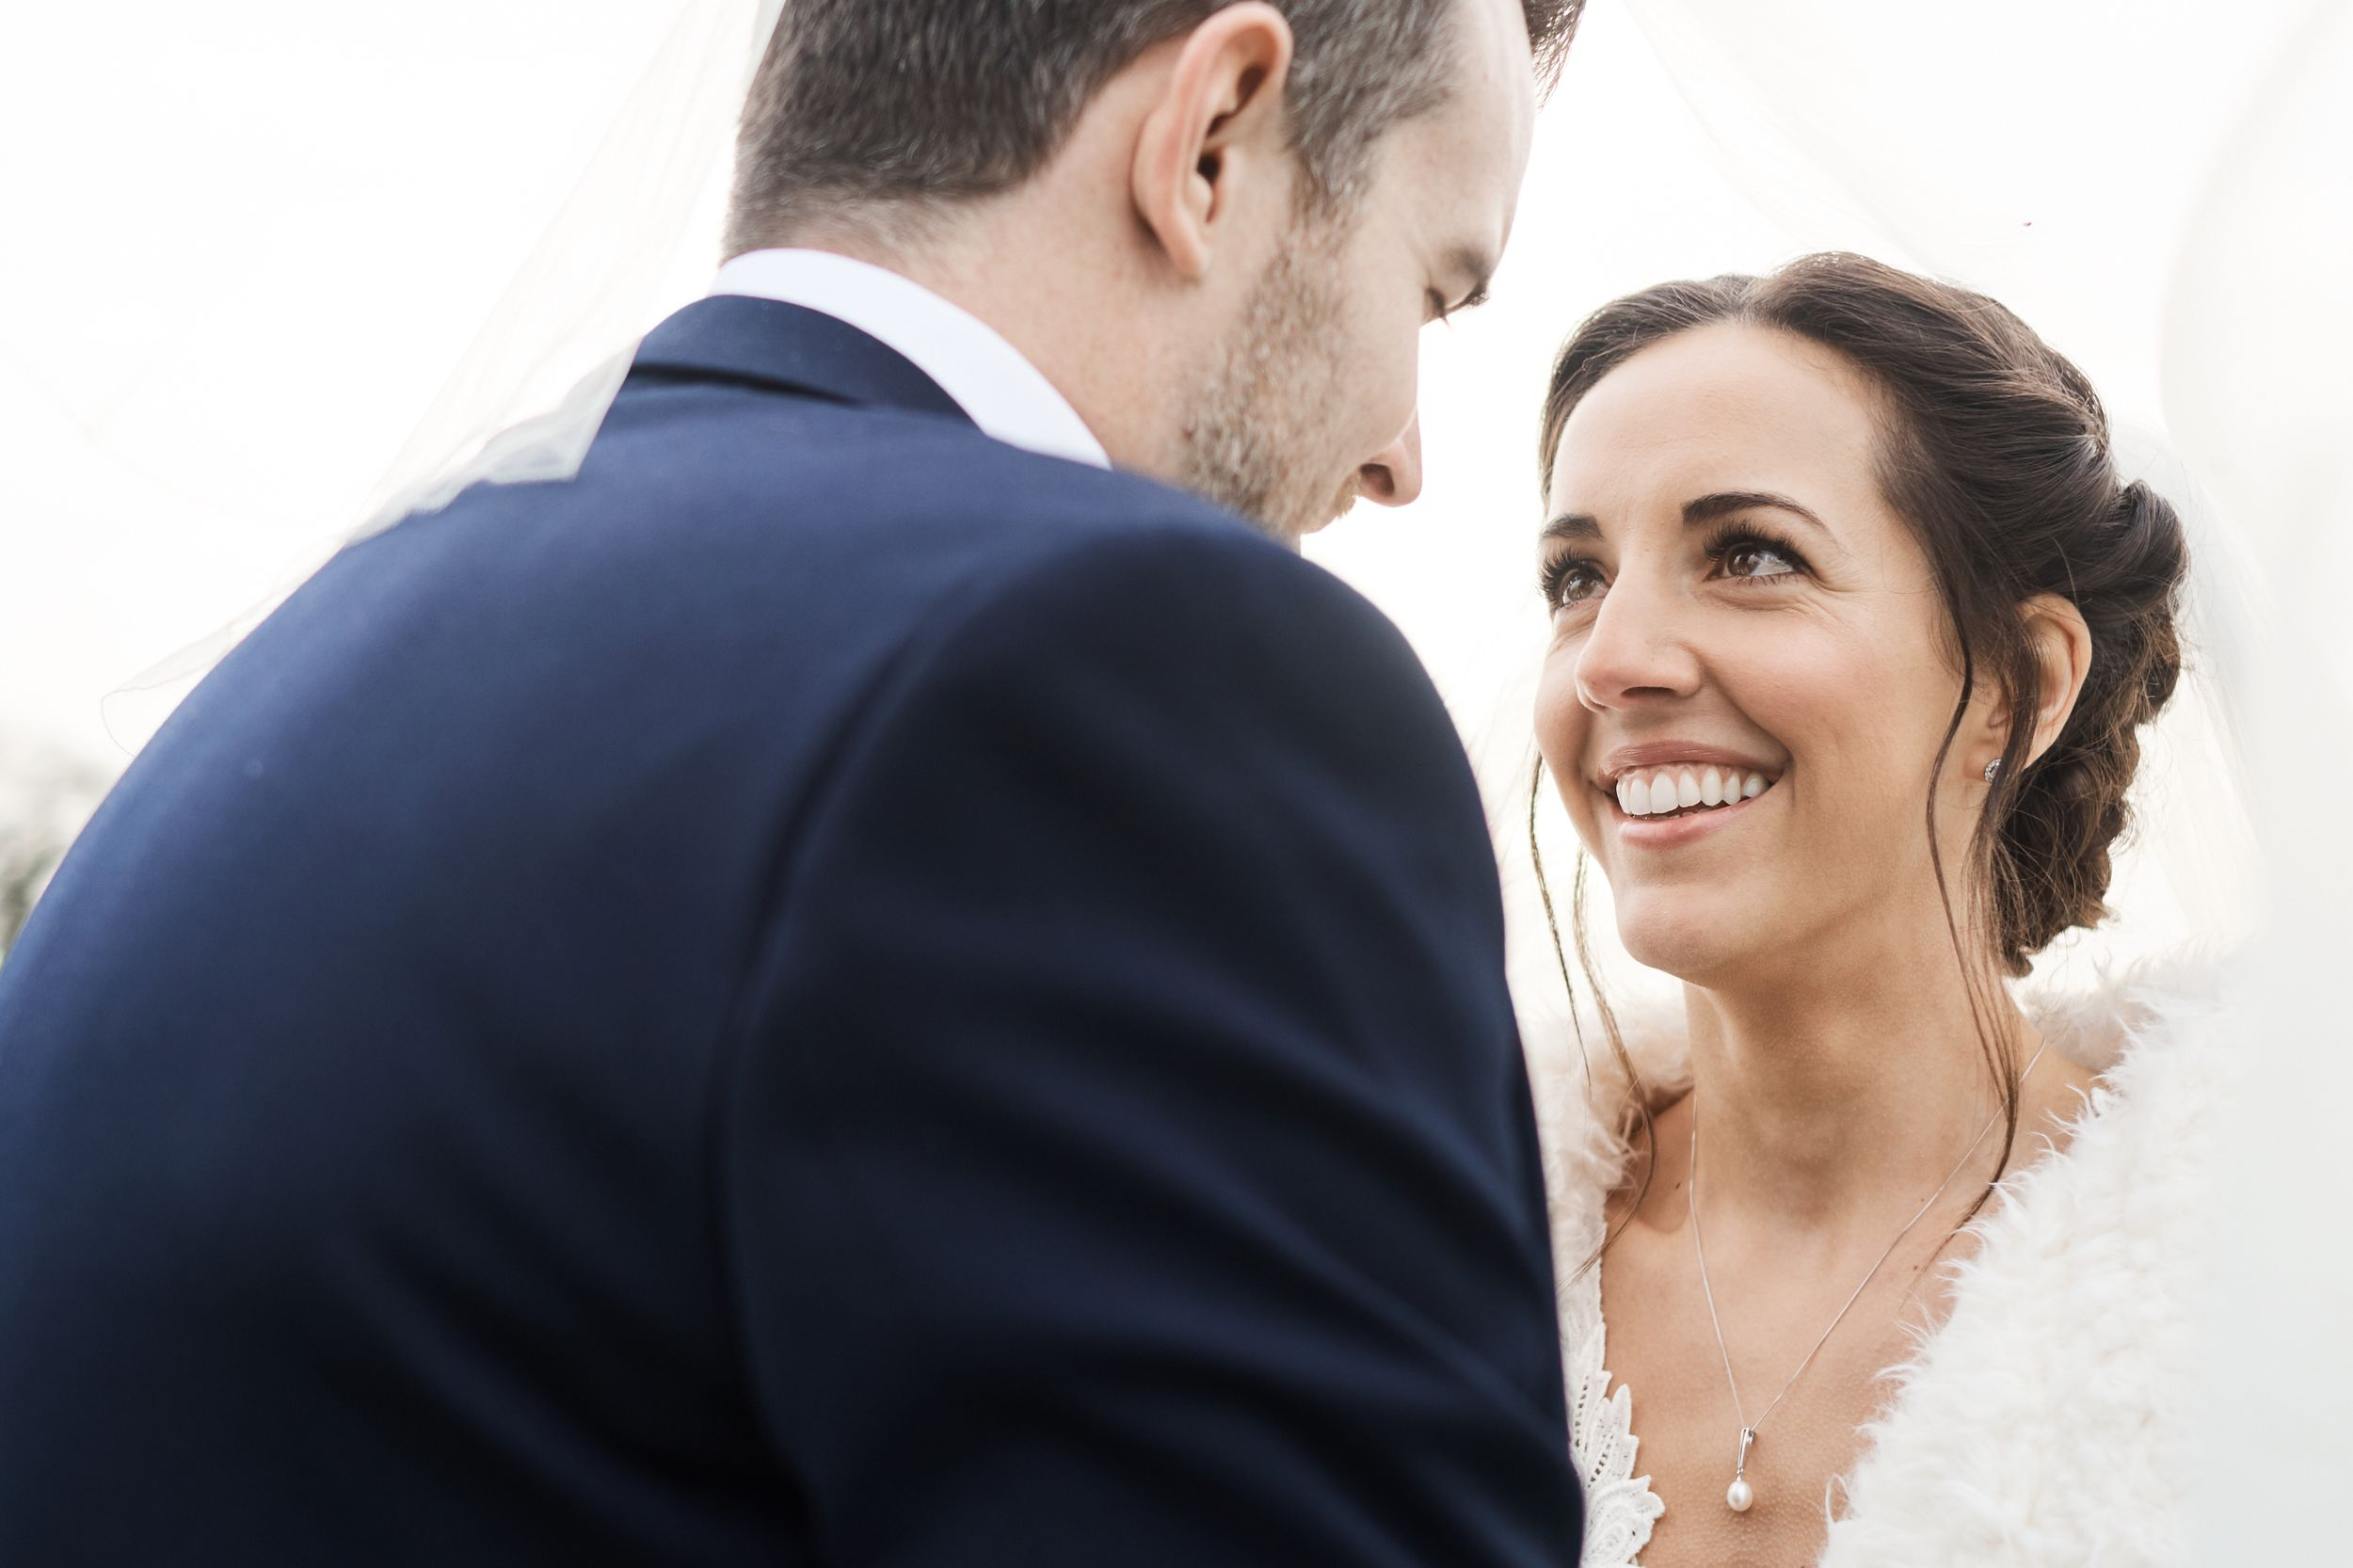 bride smiles at groom during portraits at Southwood in Norfolk. by Norfolk wedding photographer